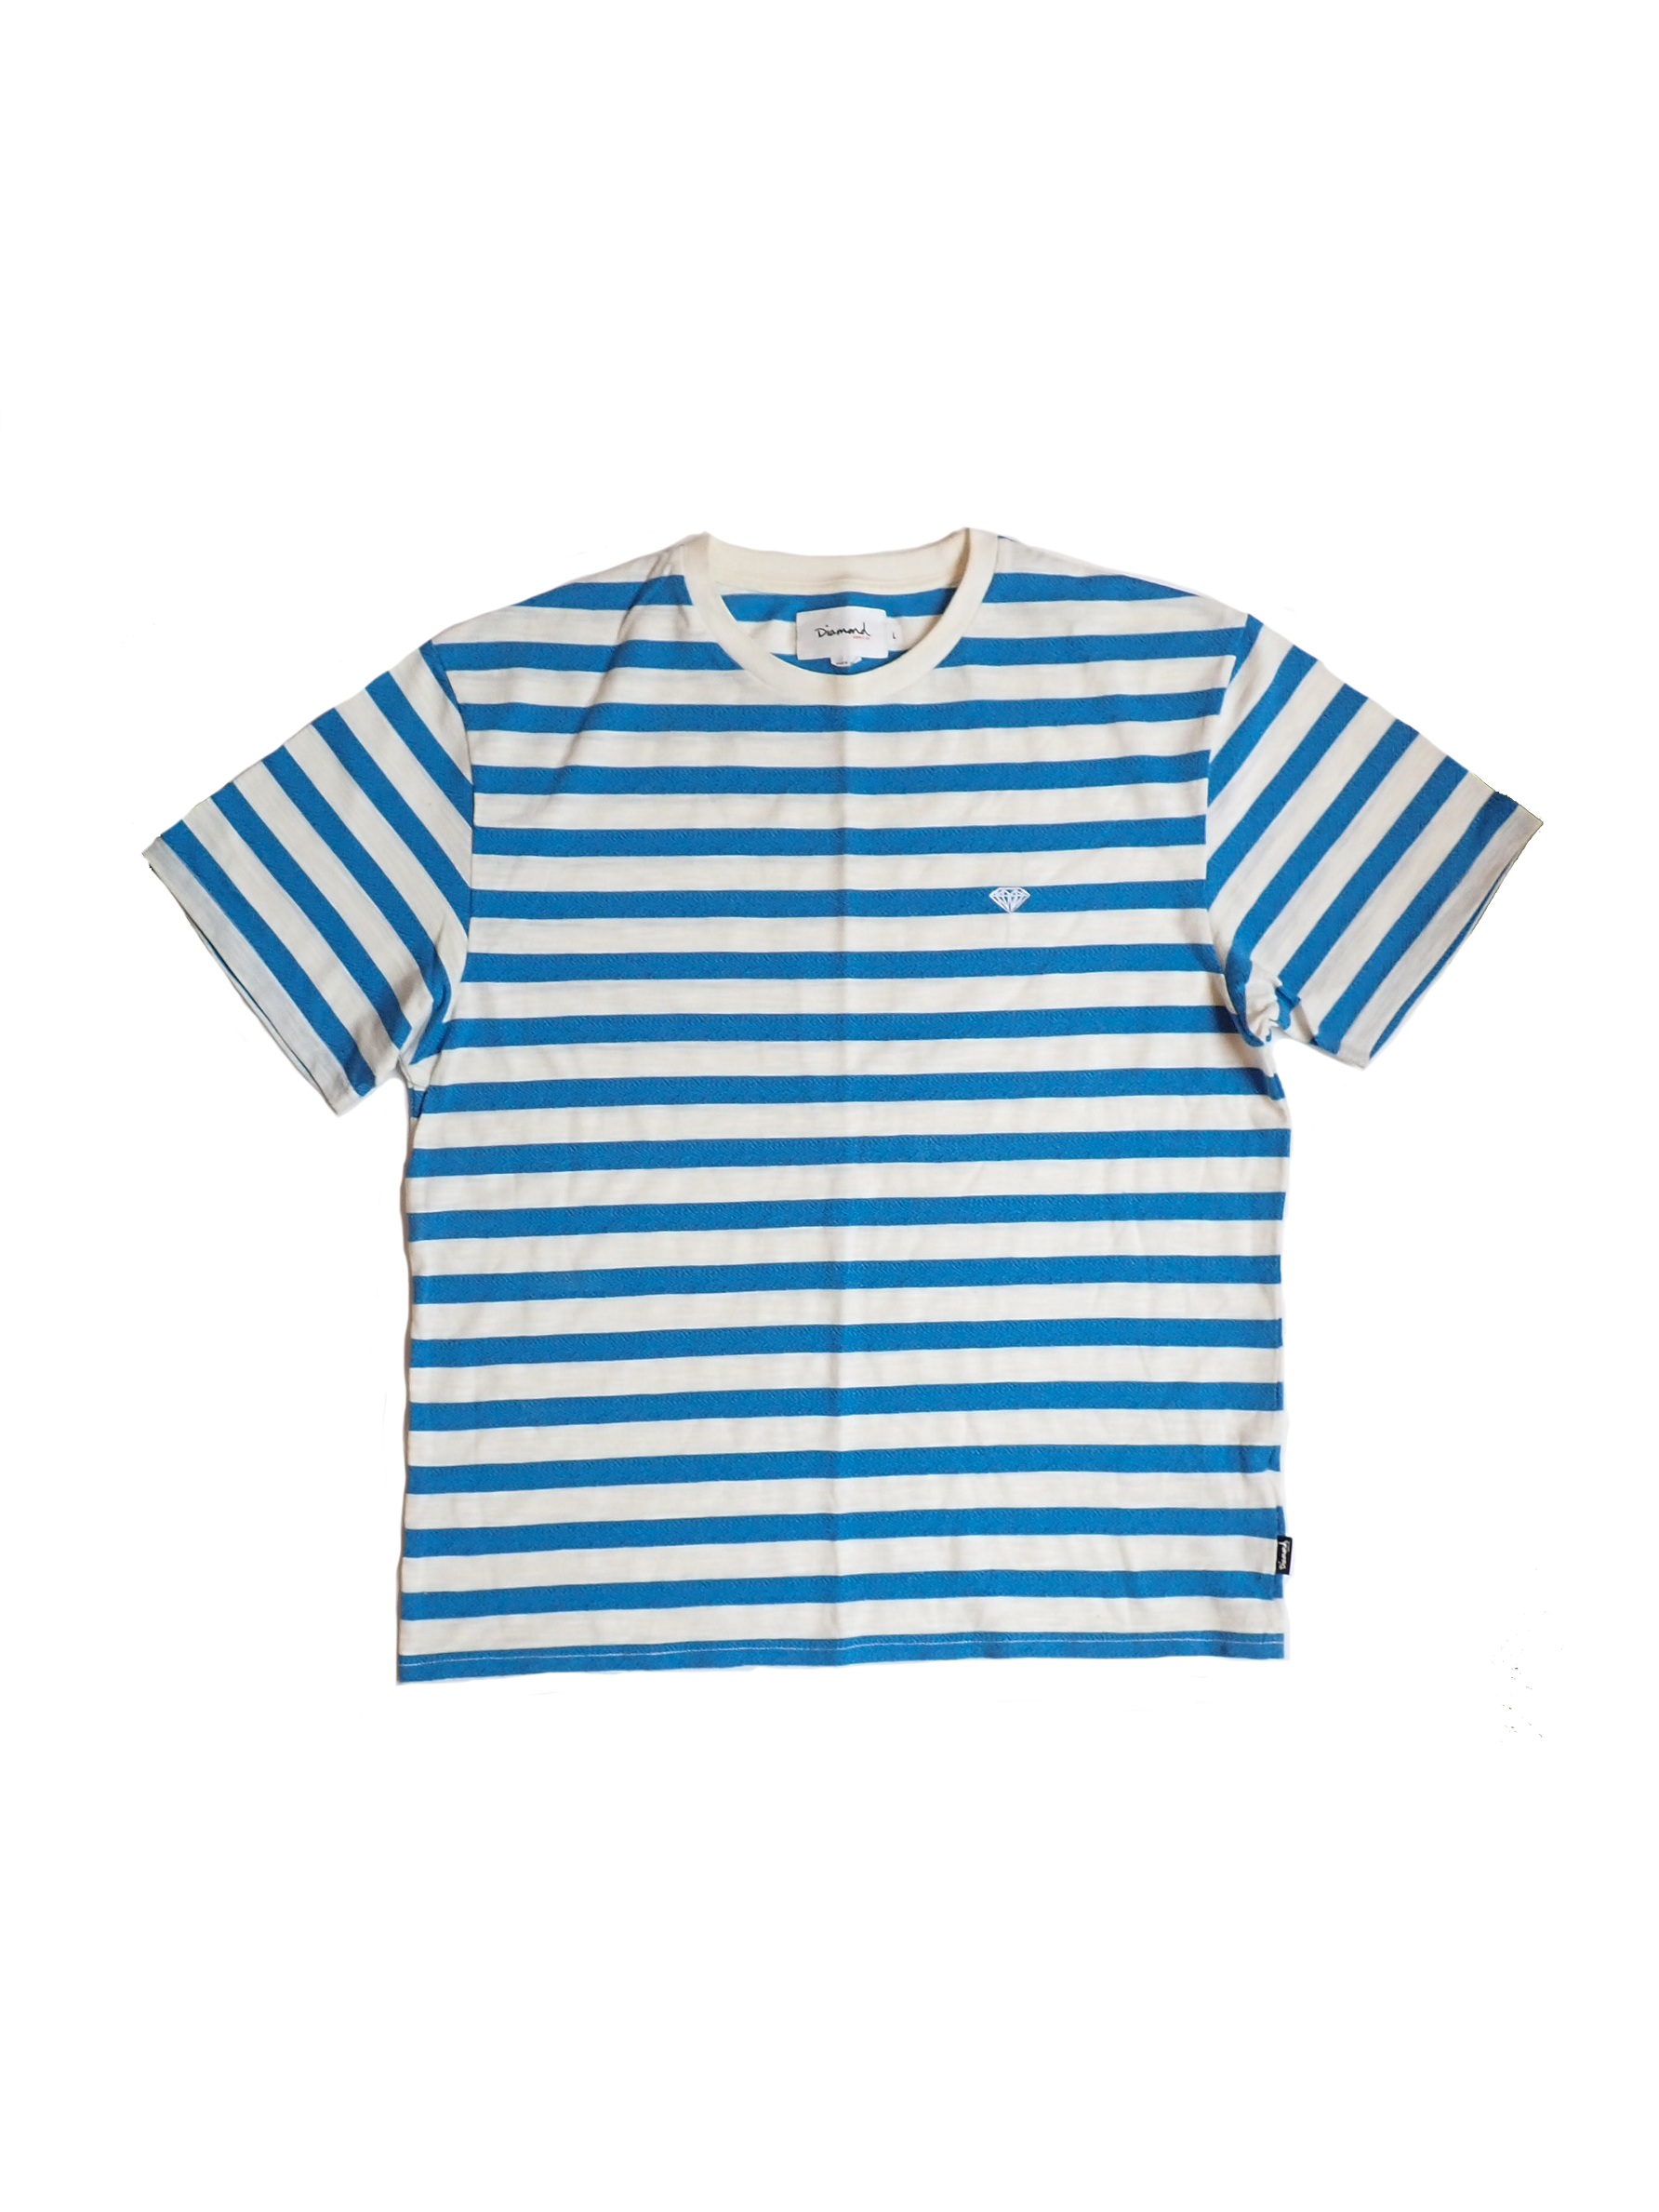 Diamond Supply Co Striped T Shirt